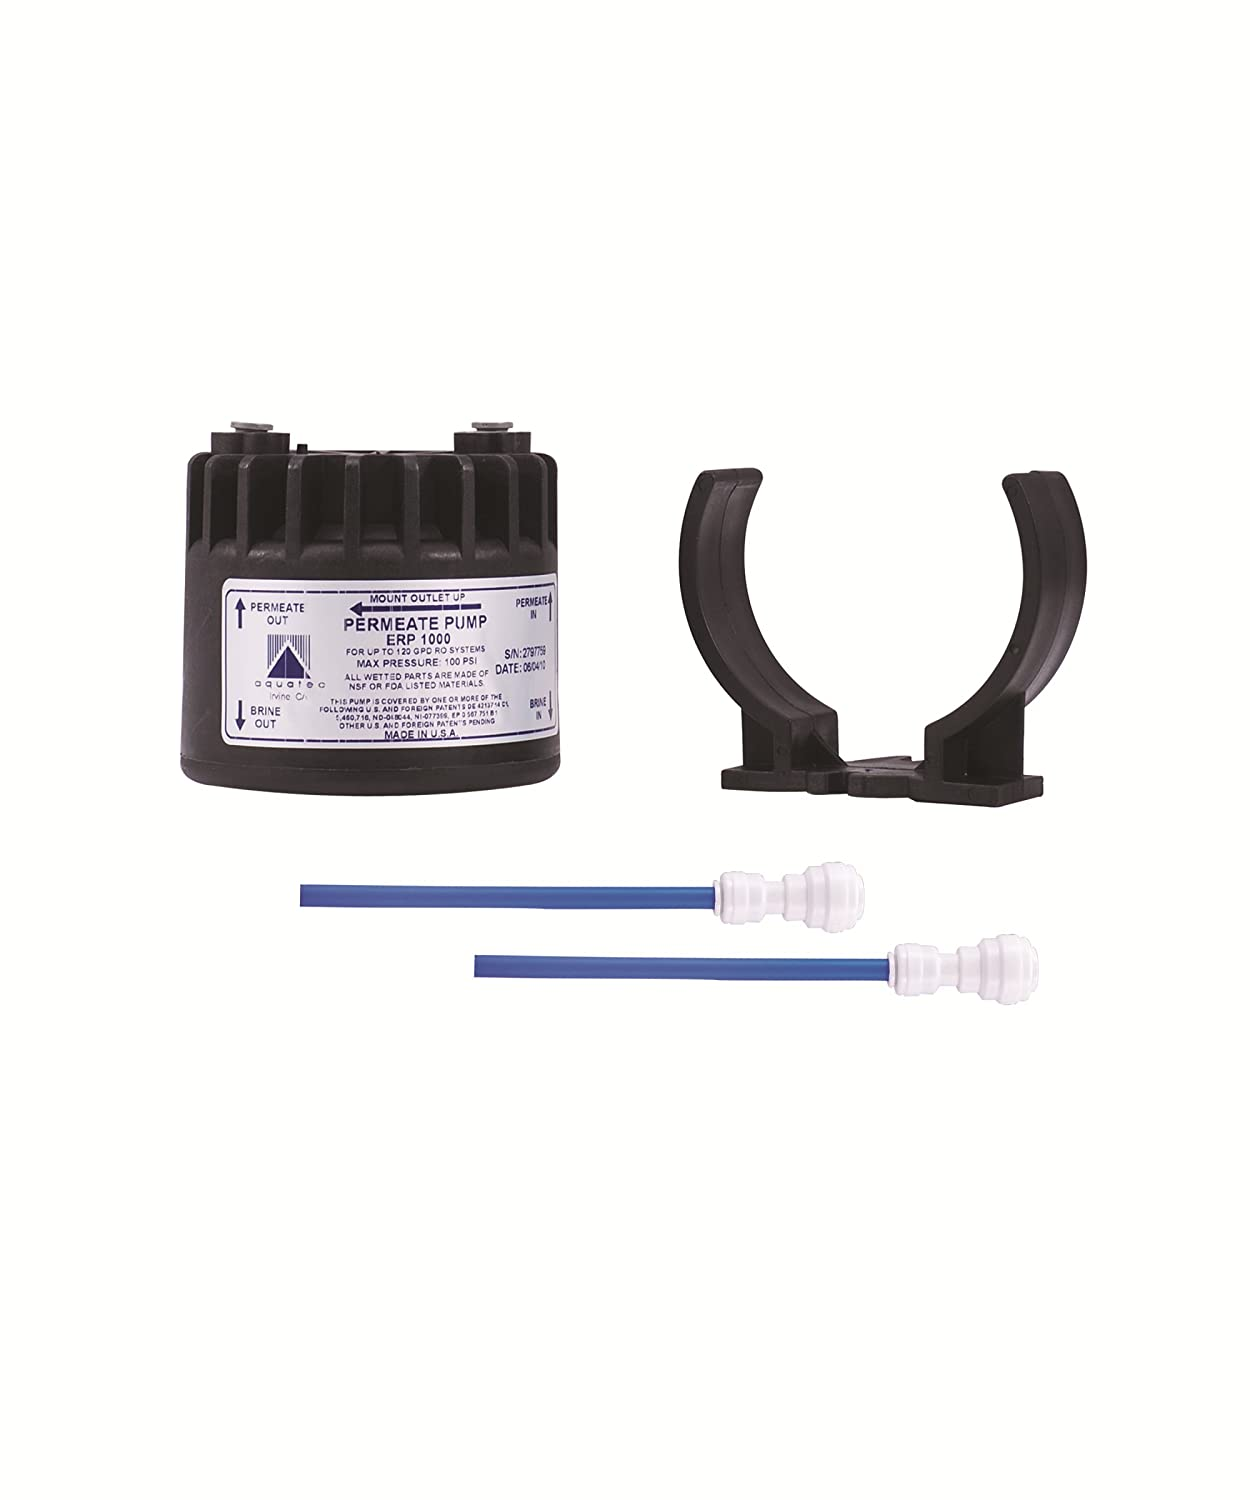 Watts Premier 560041 Permeate Pump with Install Kit